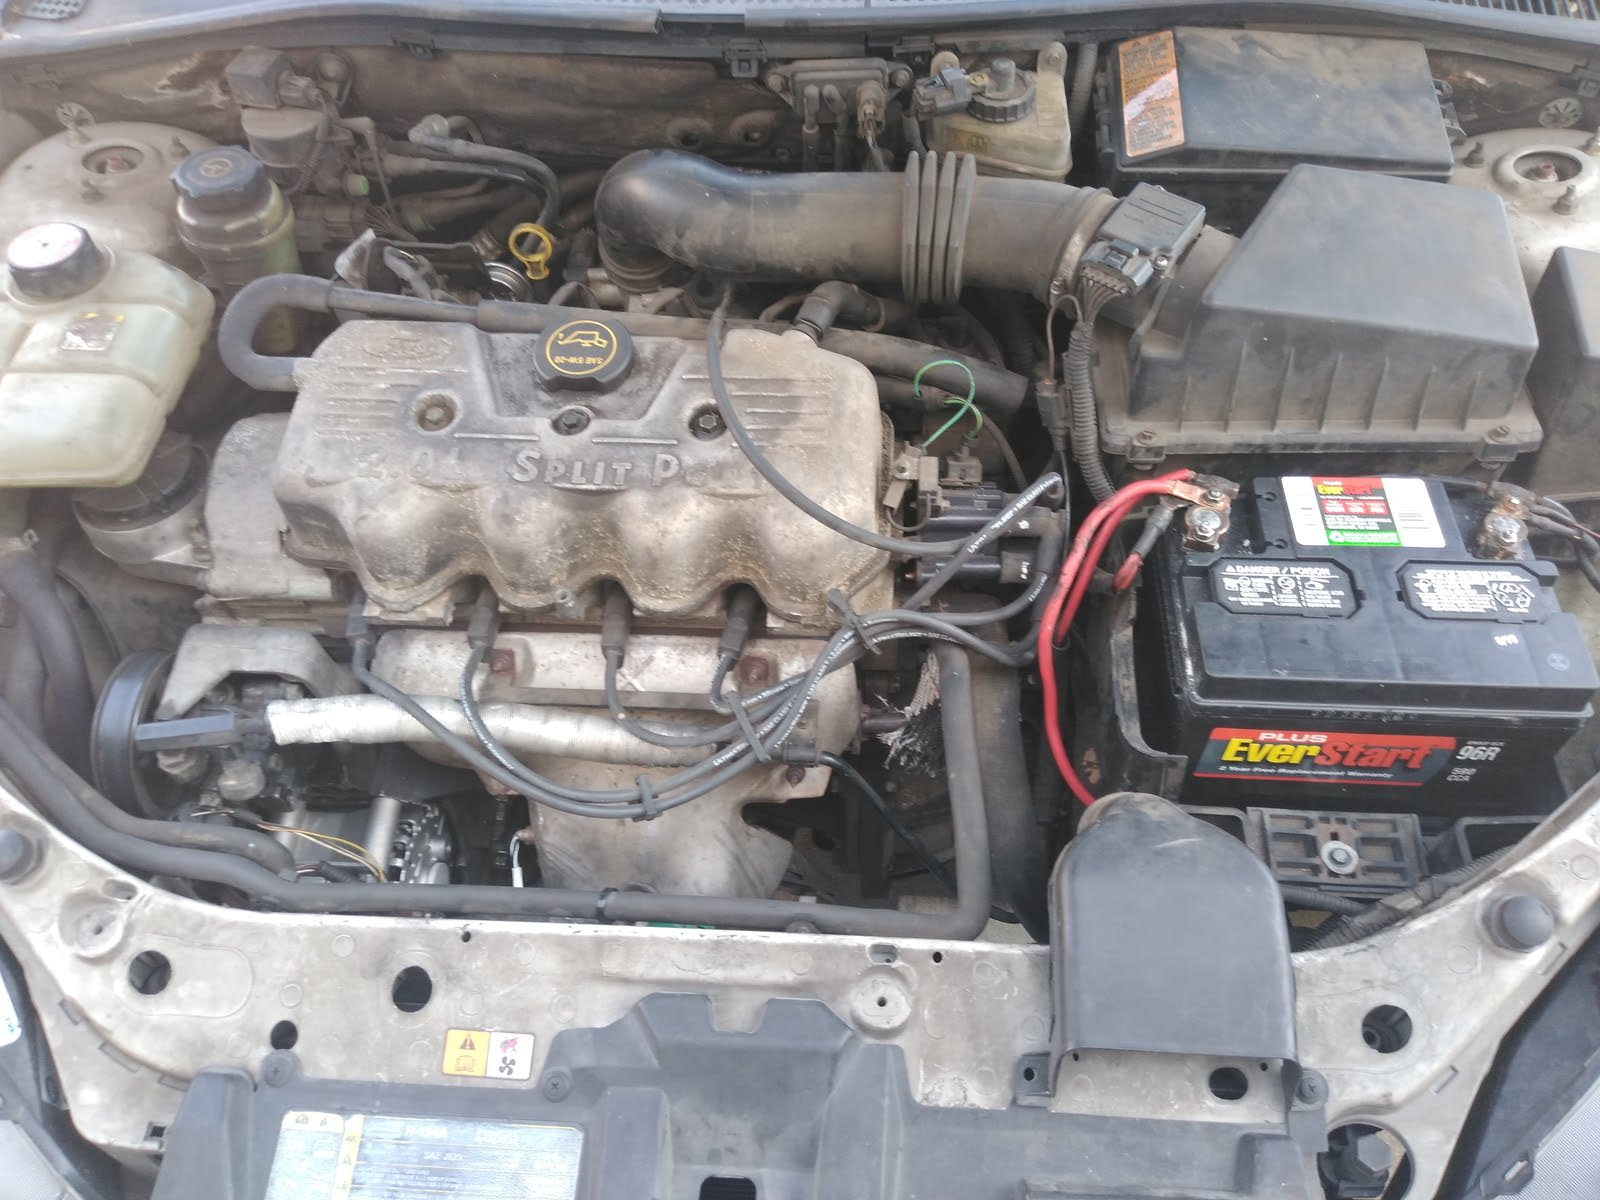 Ford Focus Questions 2002 Ford Focus Se 2 0 Alternator Charges Only When It Wants To The Cargurus